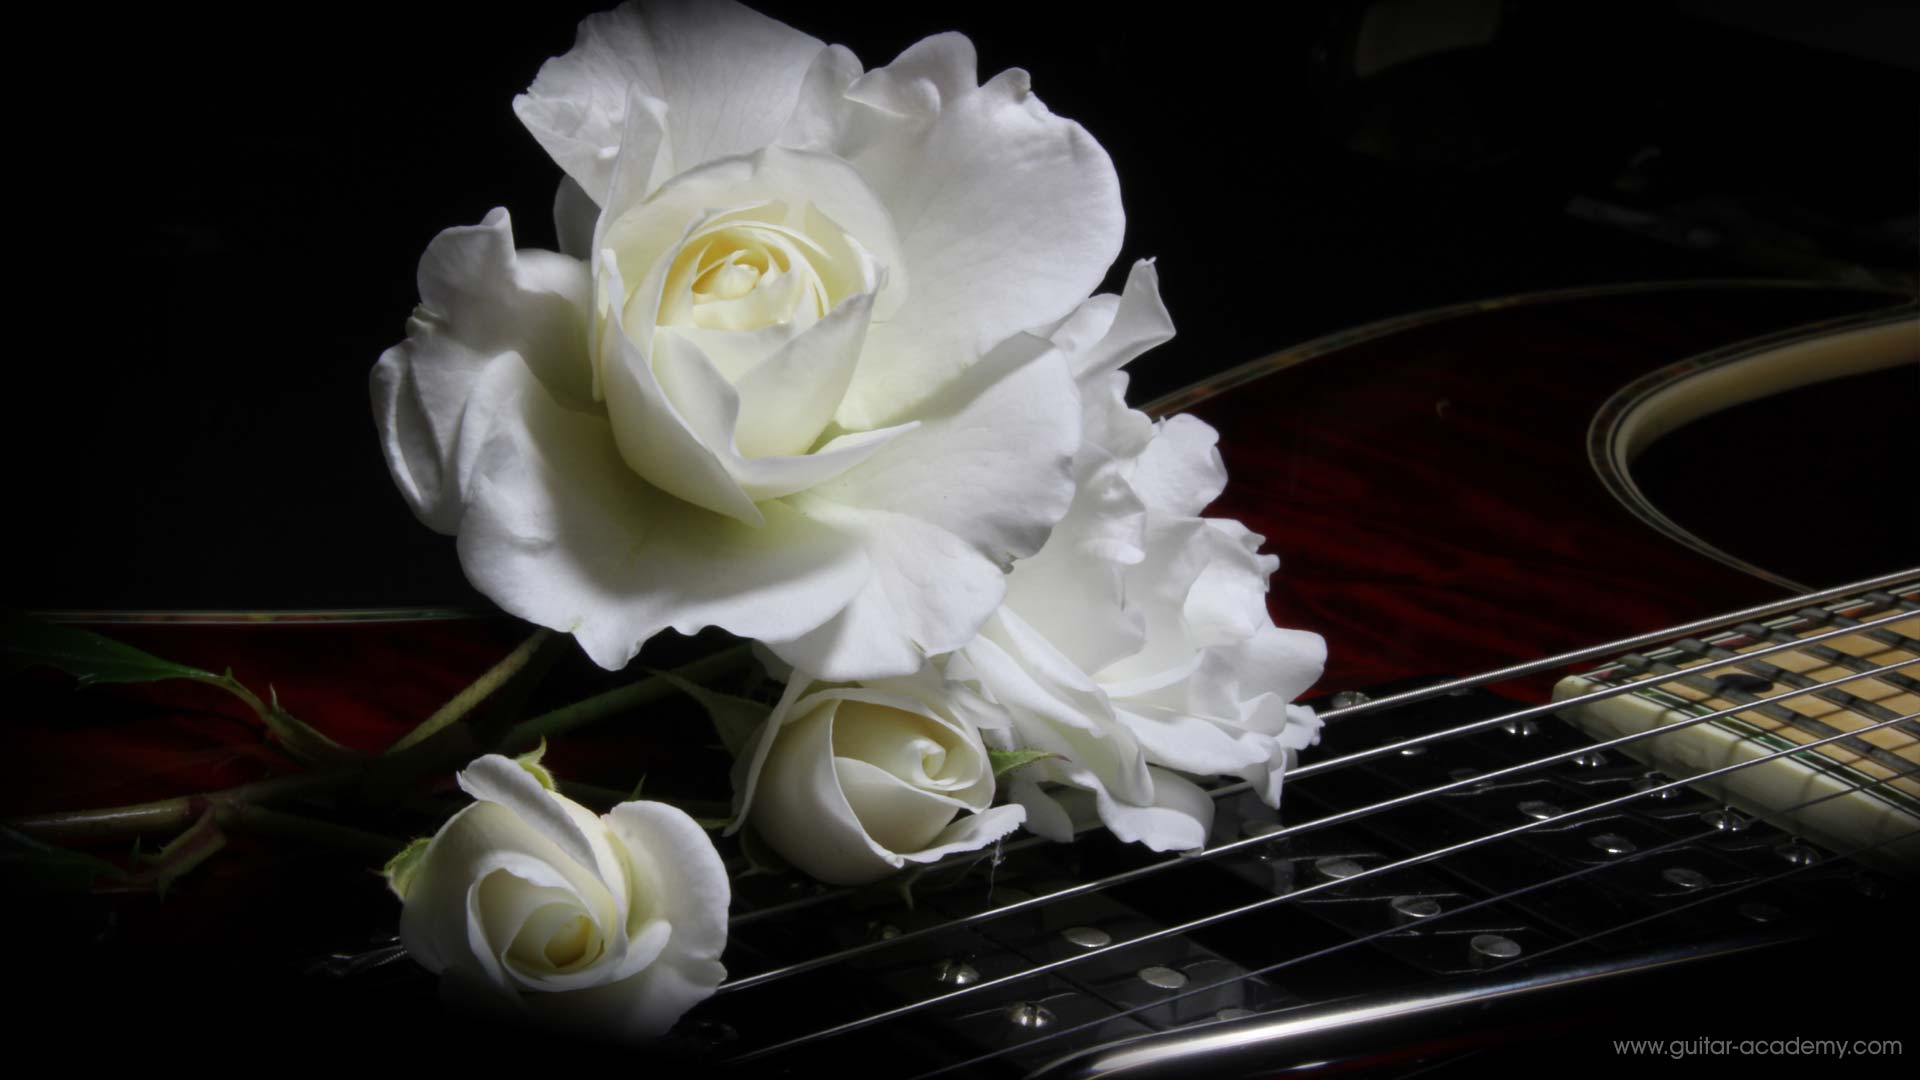 7 string guitar with rose